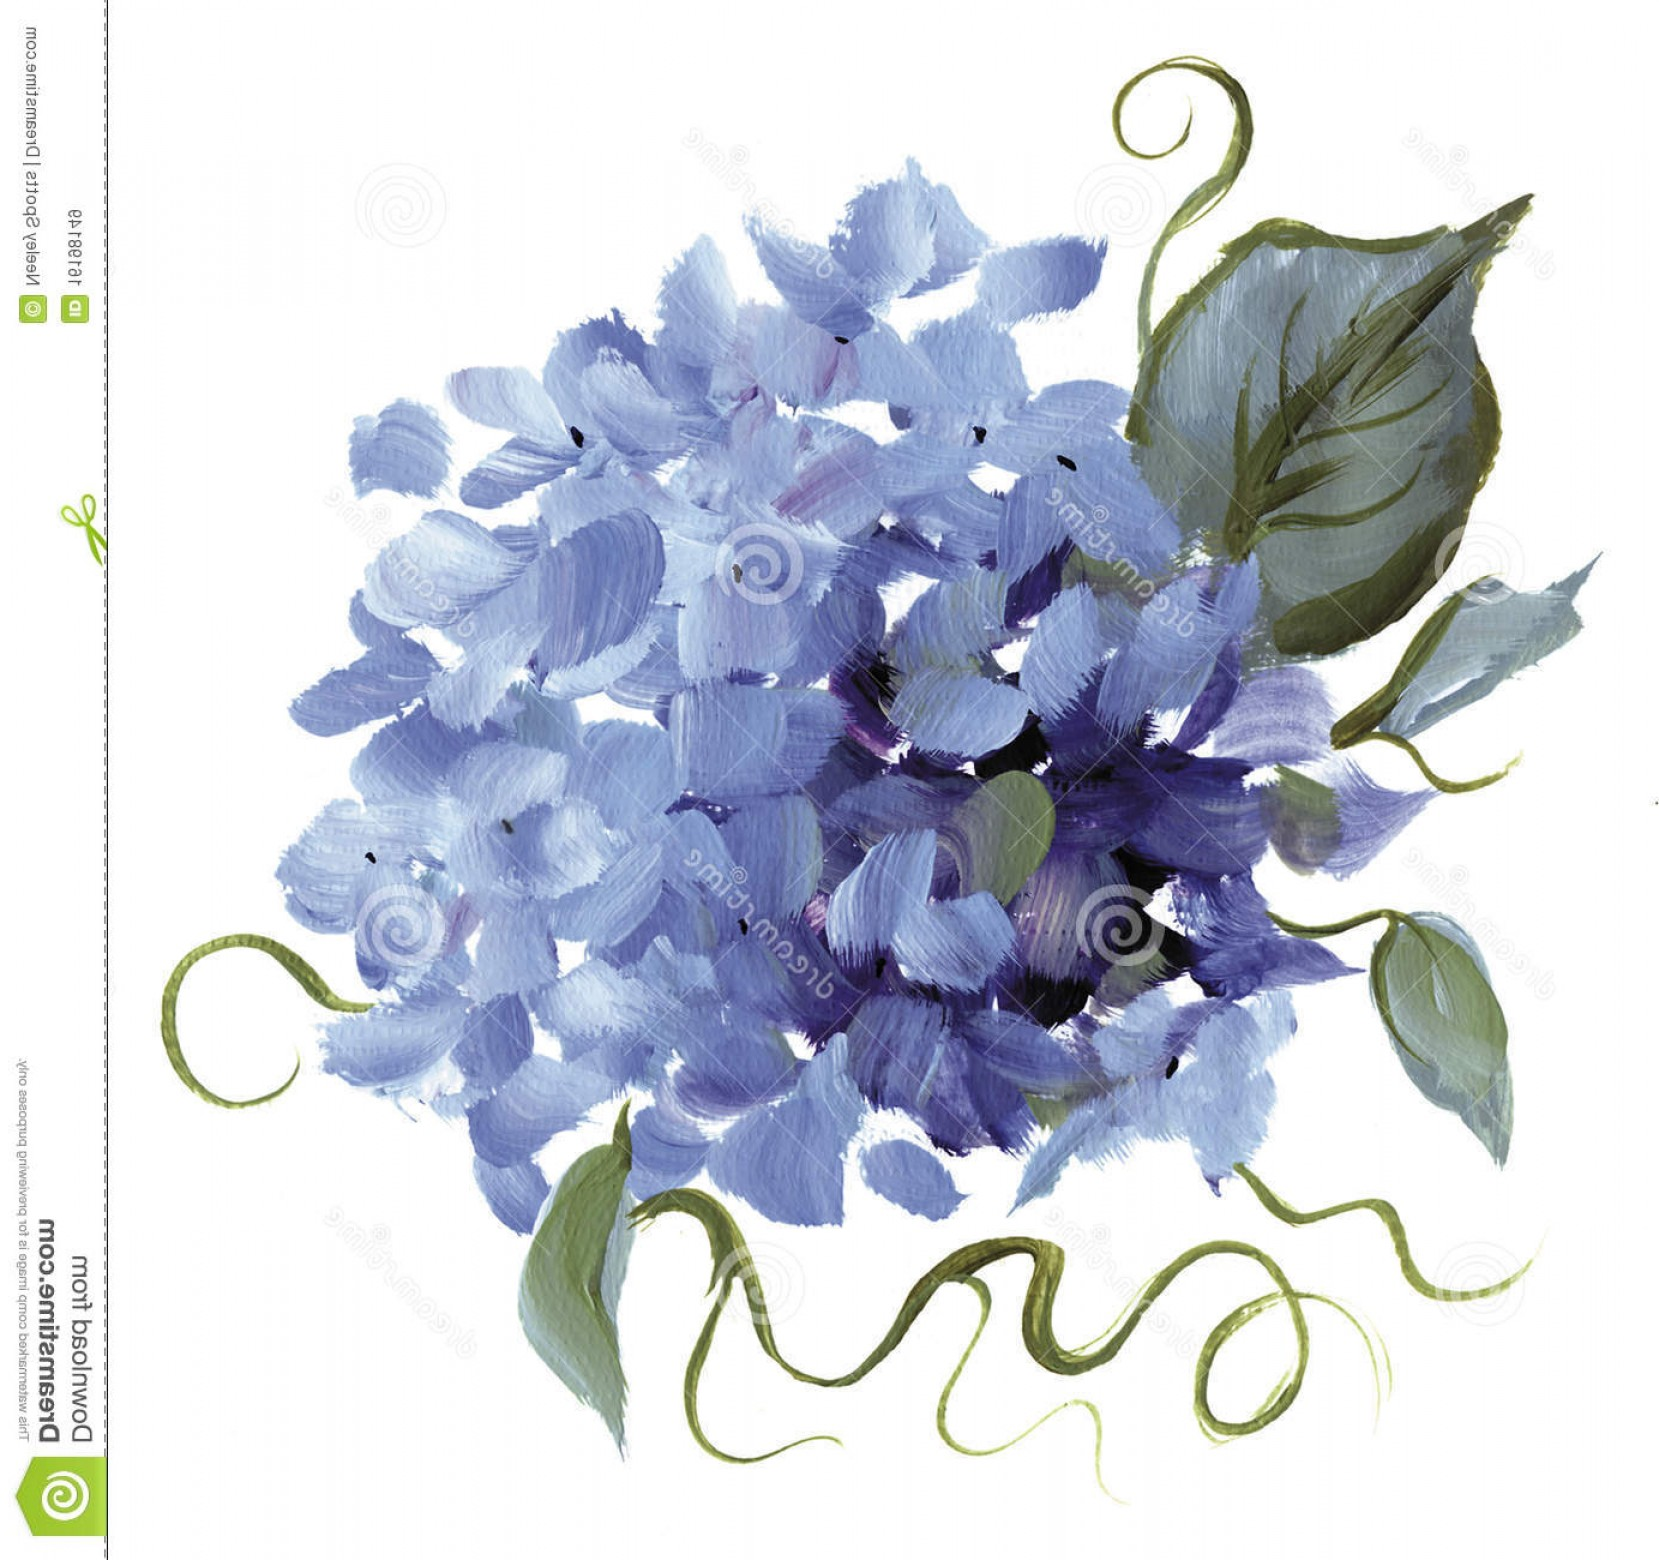 Hydrangea Vector Graphics: Royalty Free Stock Images Hand Painted Hydrangea Image